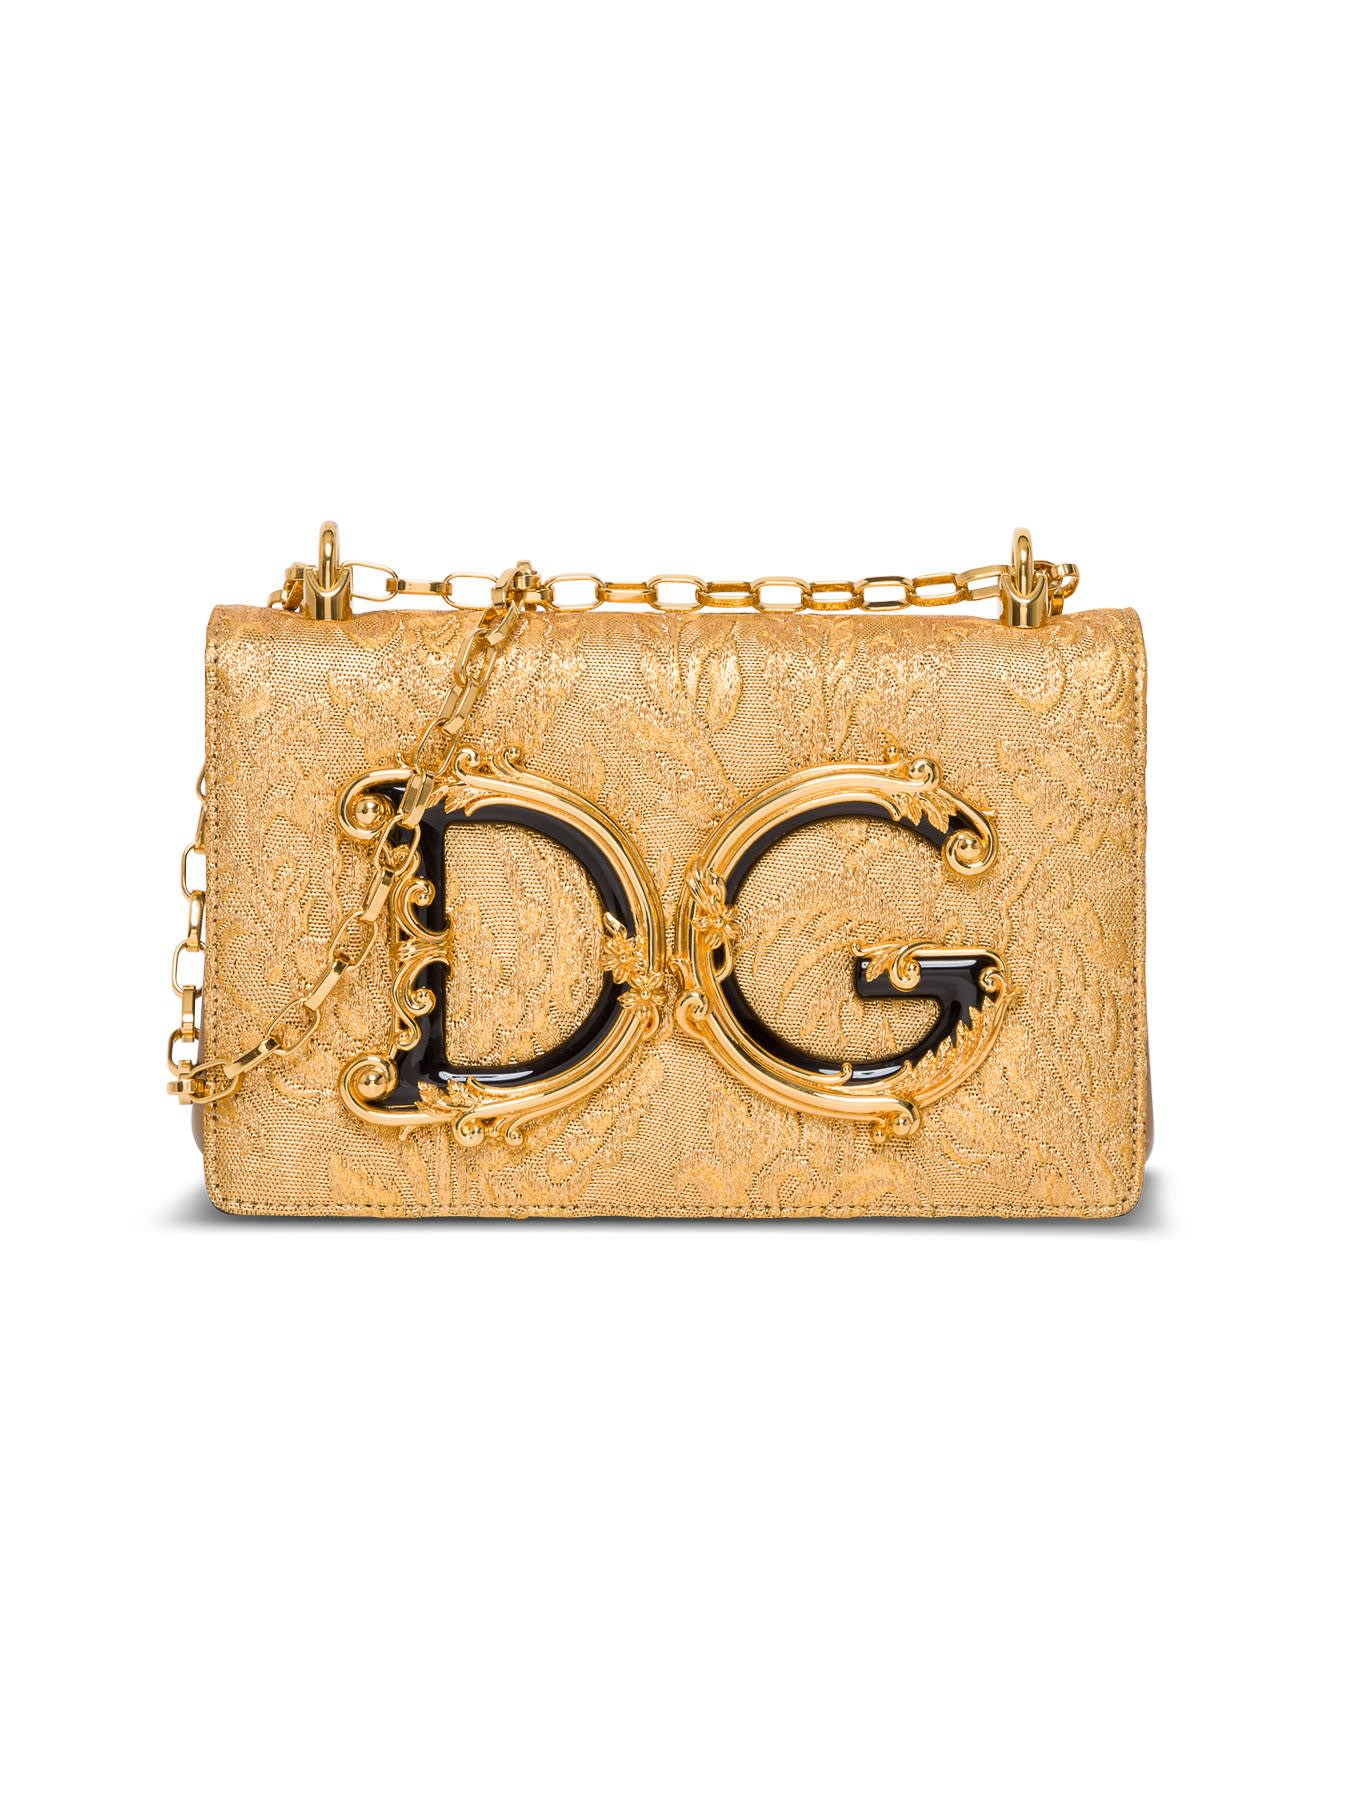 Dolce & Gabbana DG GIRL CROSSBODY BAG IN GOLD-COLORED BROCADE